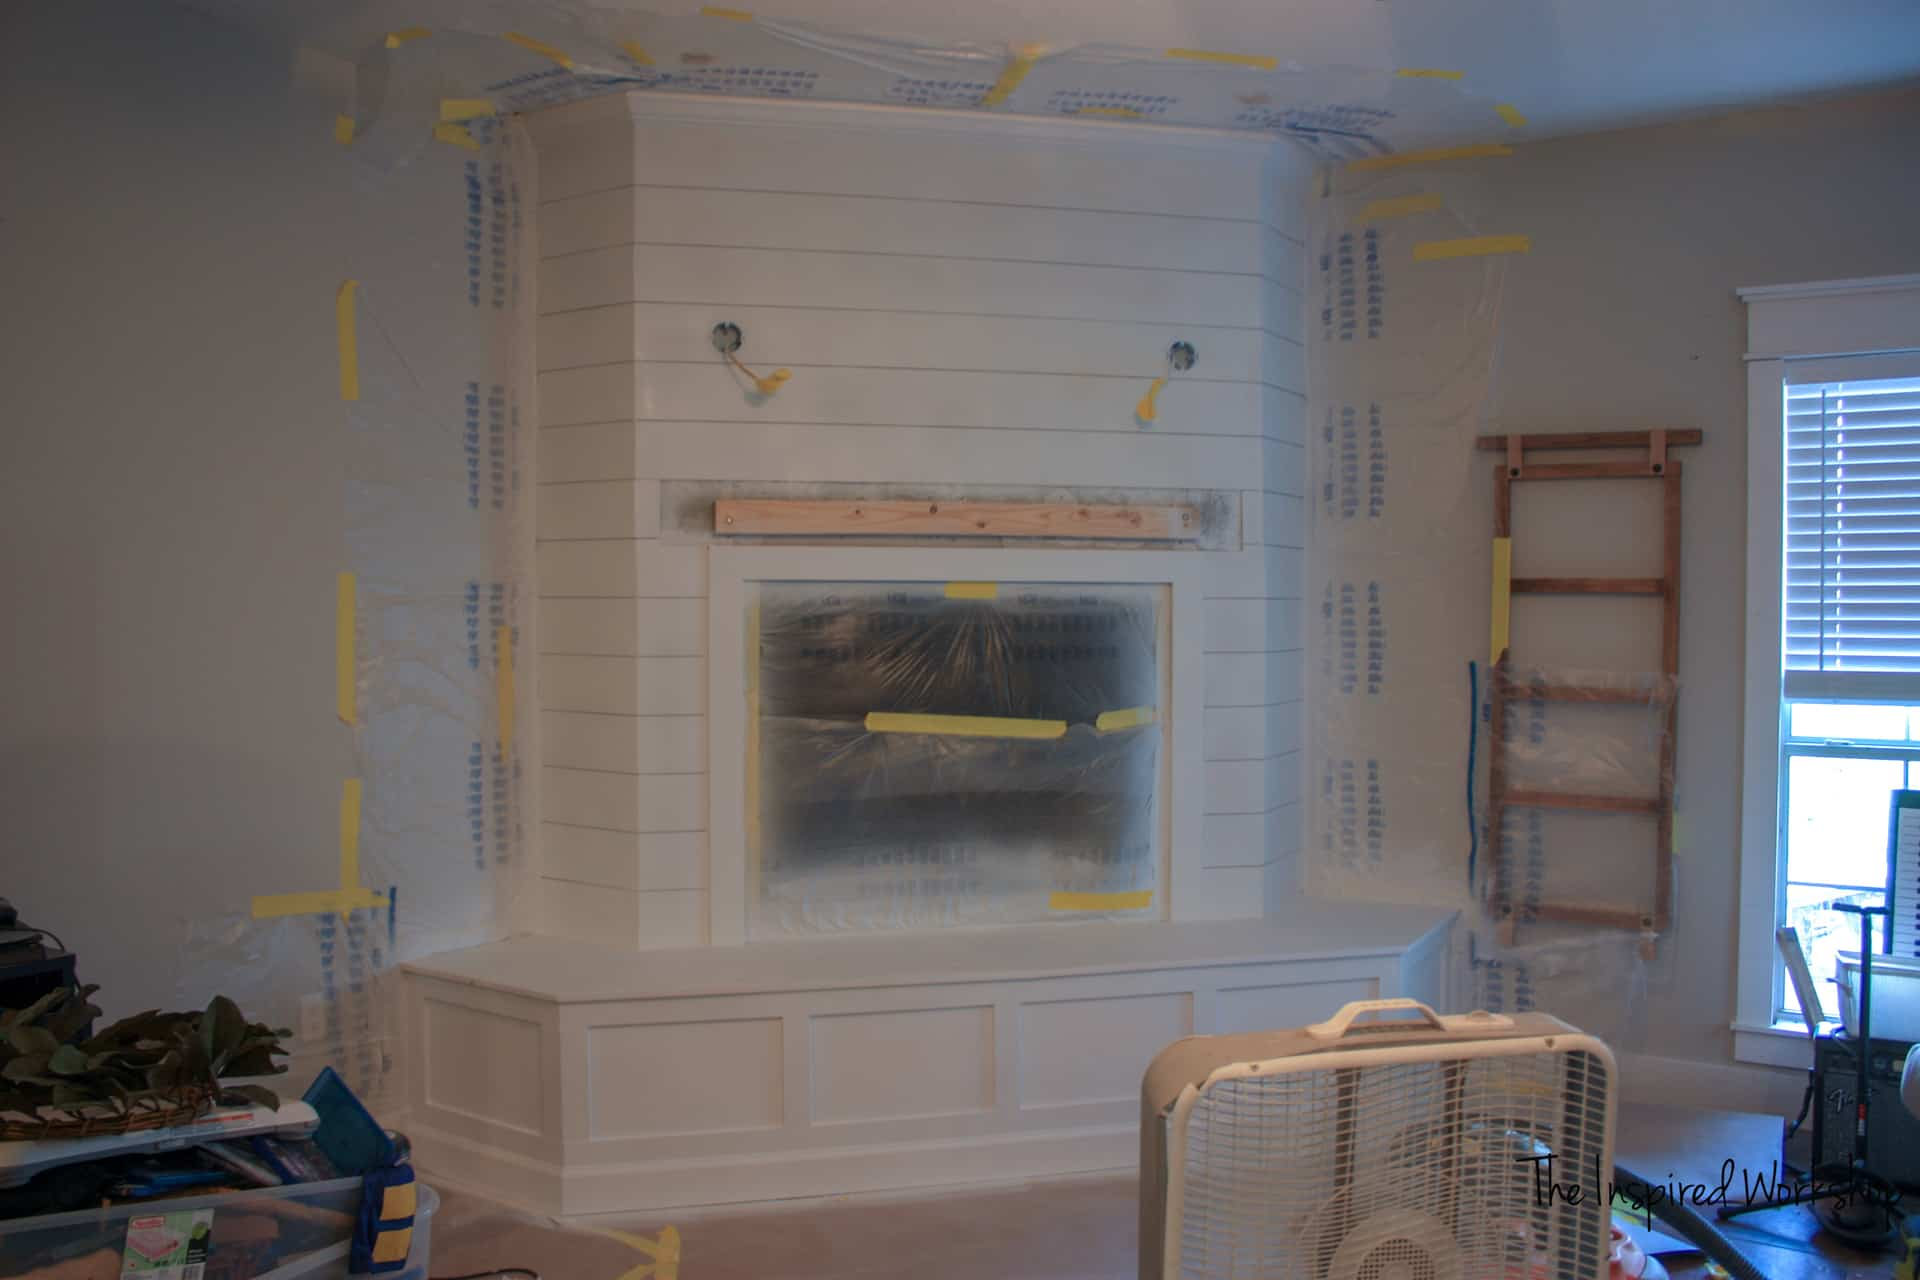 Fireplace Makeover - Primer sprayed